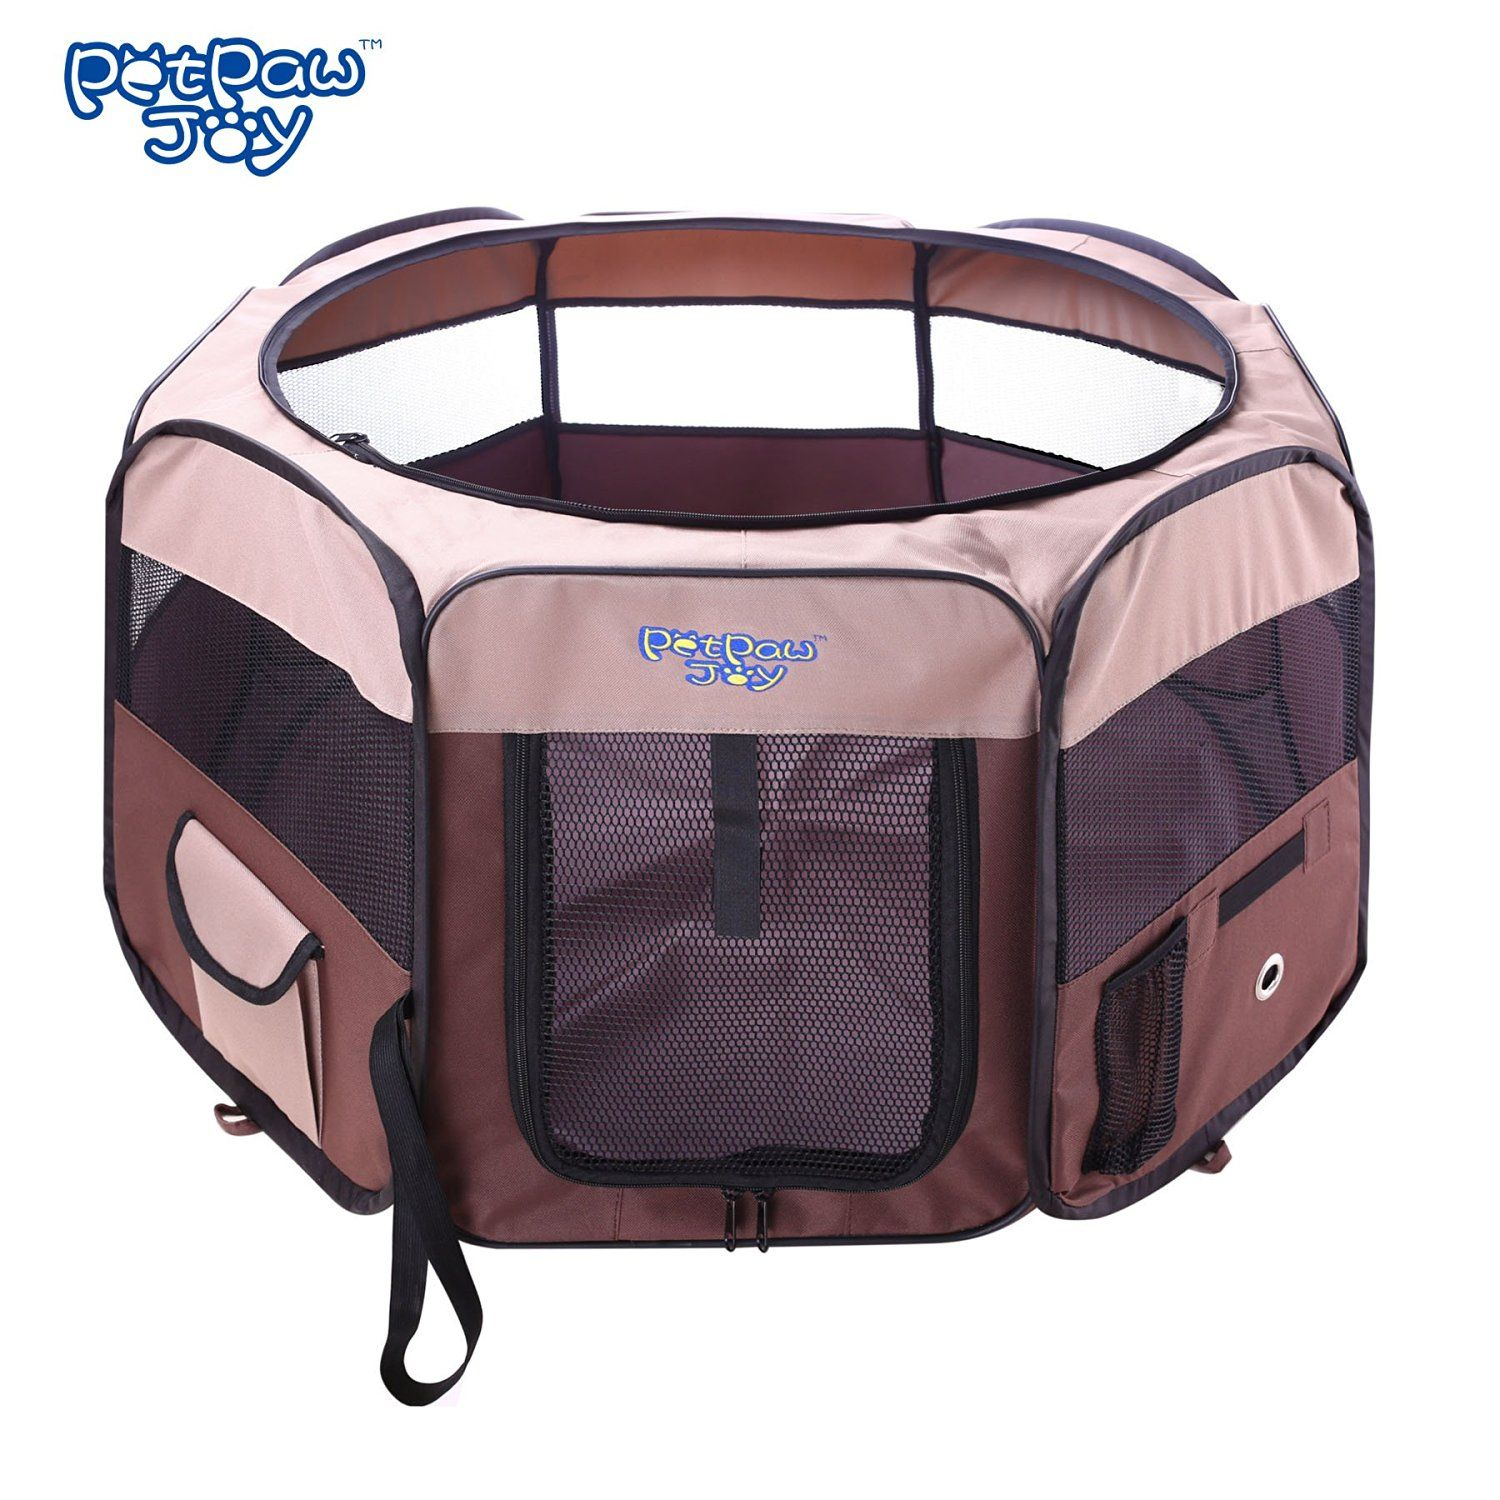 Dog Octagon Playpen Dog Popup Tent Playpen With Detachable Mesh